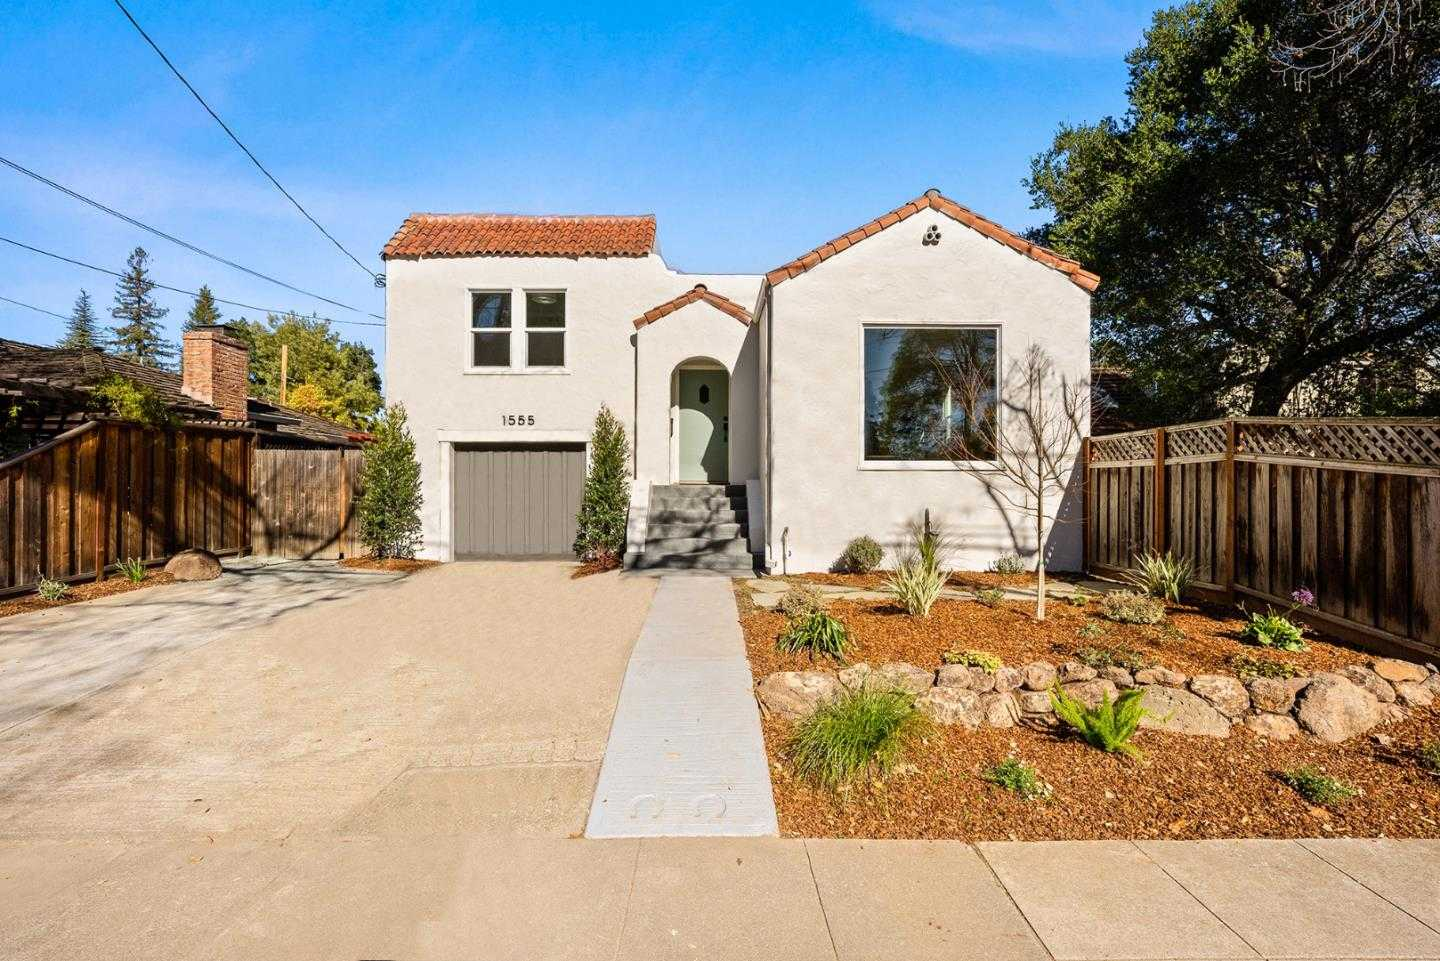 $1,898,000 - 3Br/1Ba -  for Sale in Palo Alto